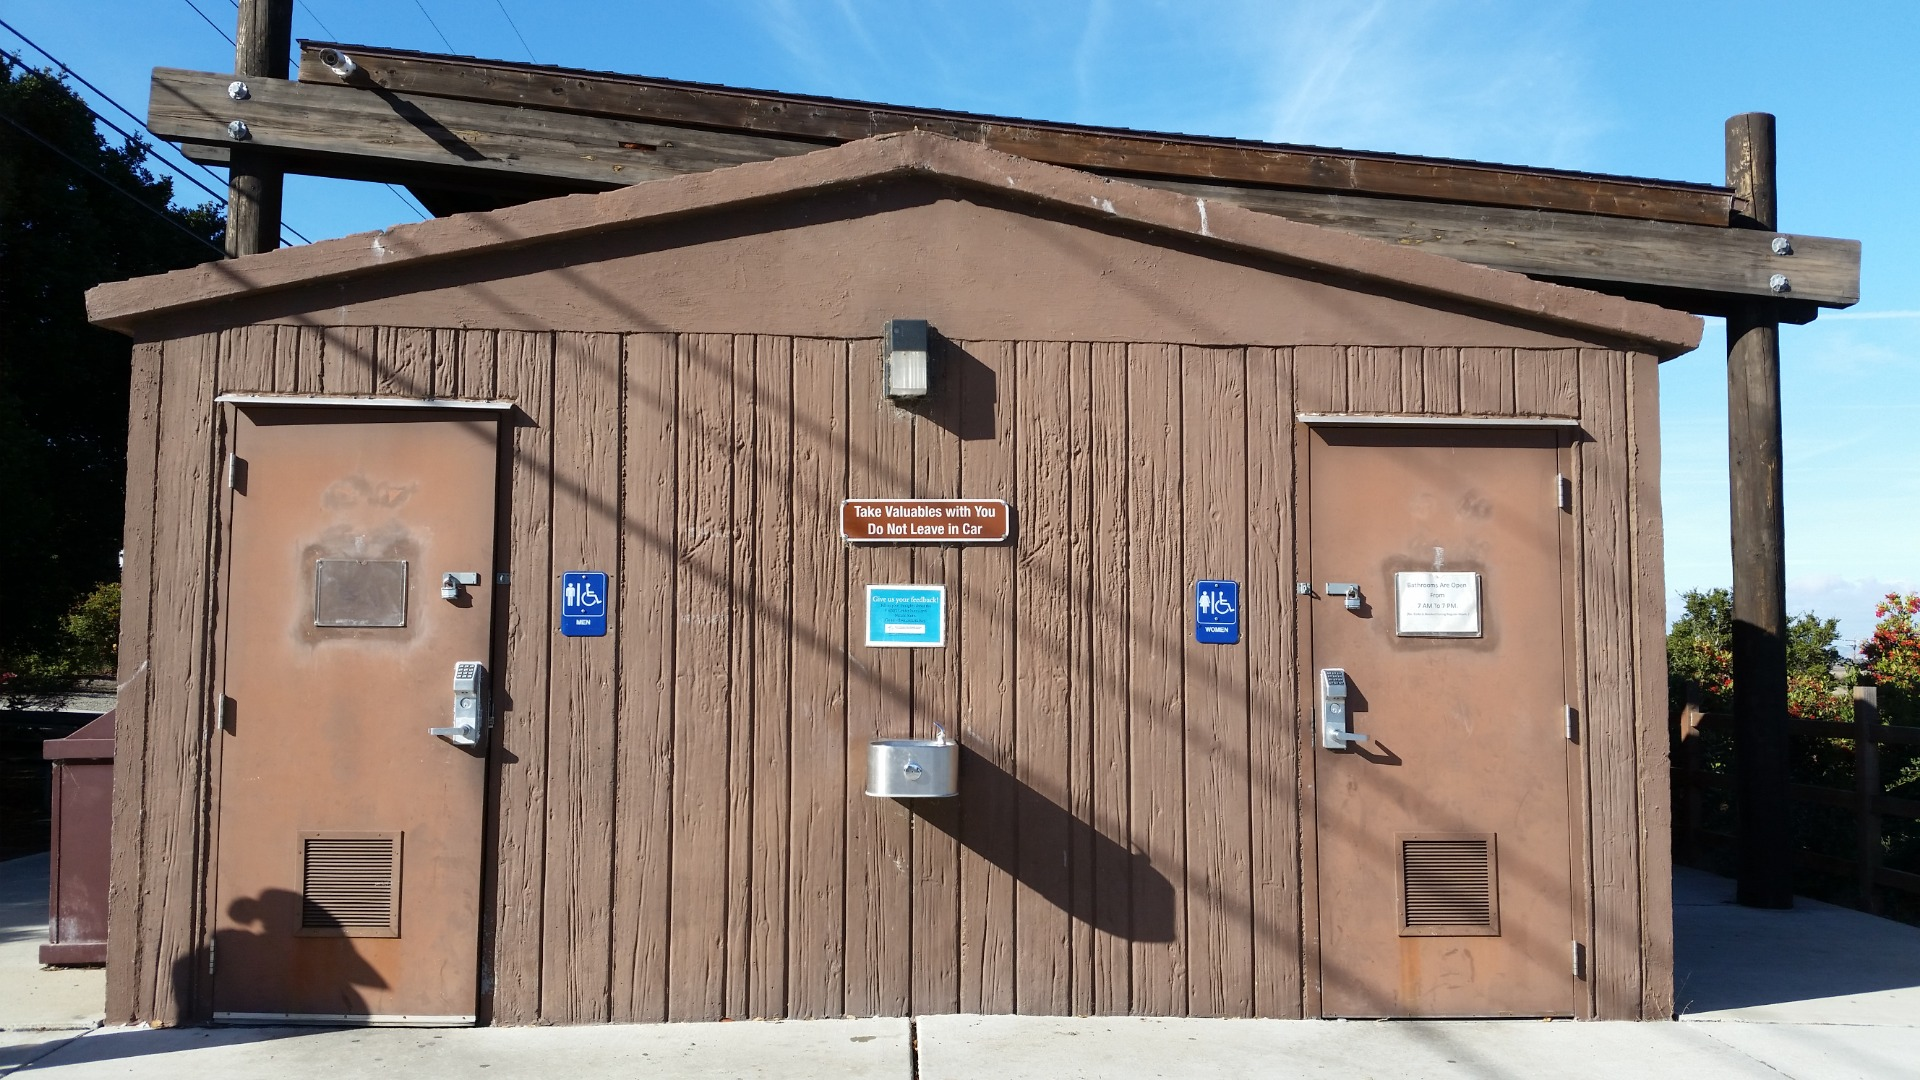 In regular business hours, it opens. If you cannot open the door and you are sure nobody is in the bathroom, wait a minute and hold the door knob, rotate to open the door.  If you still cannot open it, go to the visitor center to ask for help.